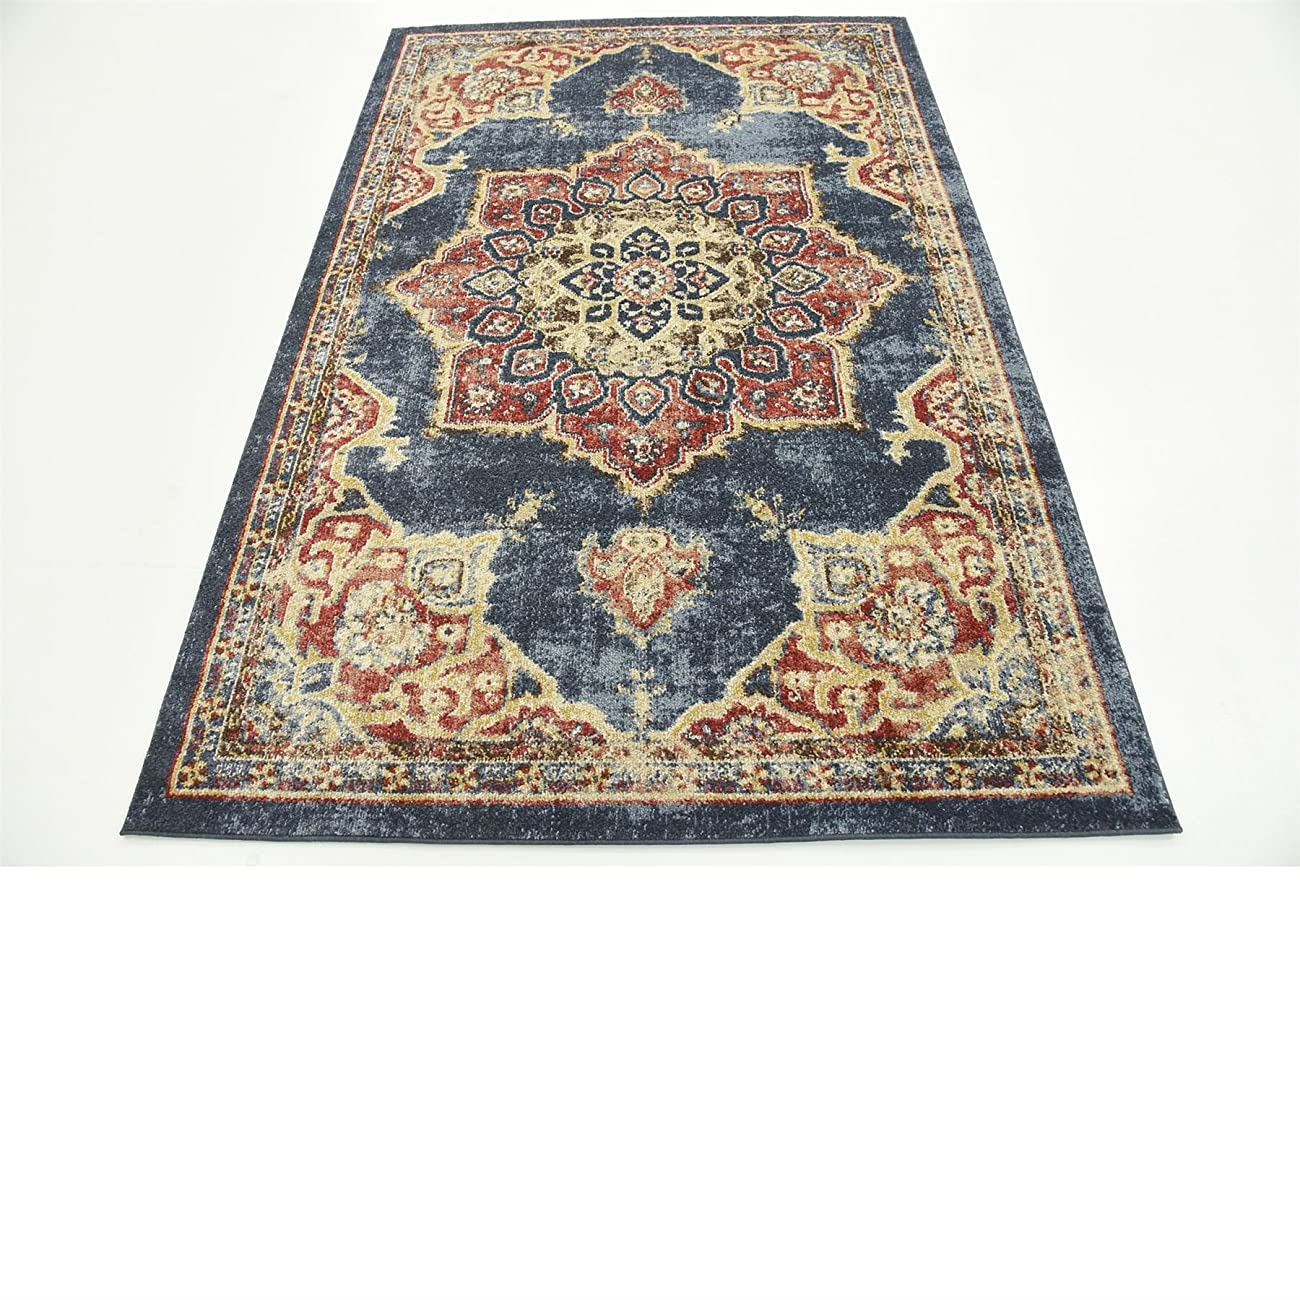 Traditional Persian Rugs Vintage Design Inspired Overdyed Fancy Dark Blue 4' x 6' FT (122cm x 183cm) St. James Area Rug 2